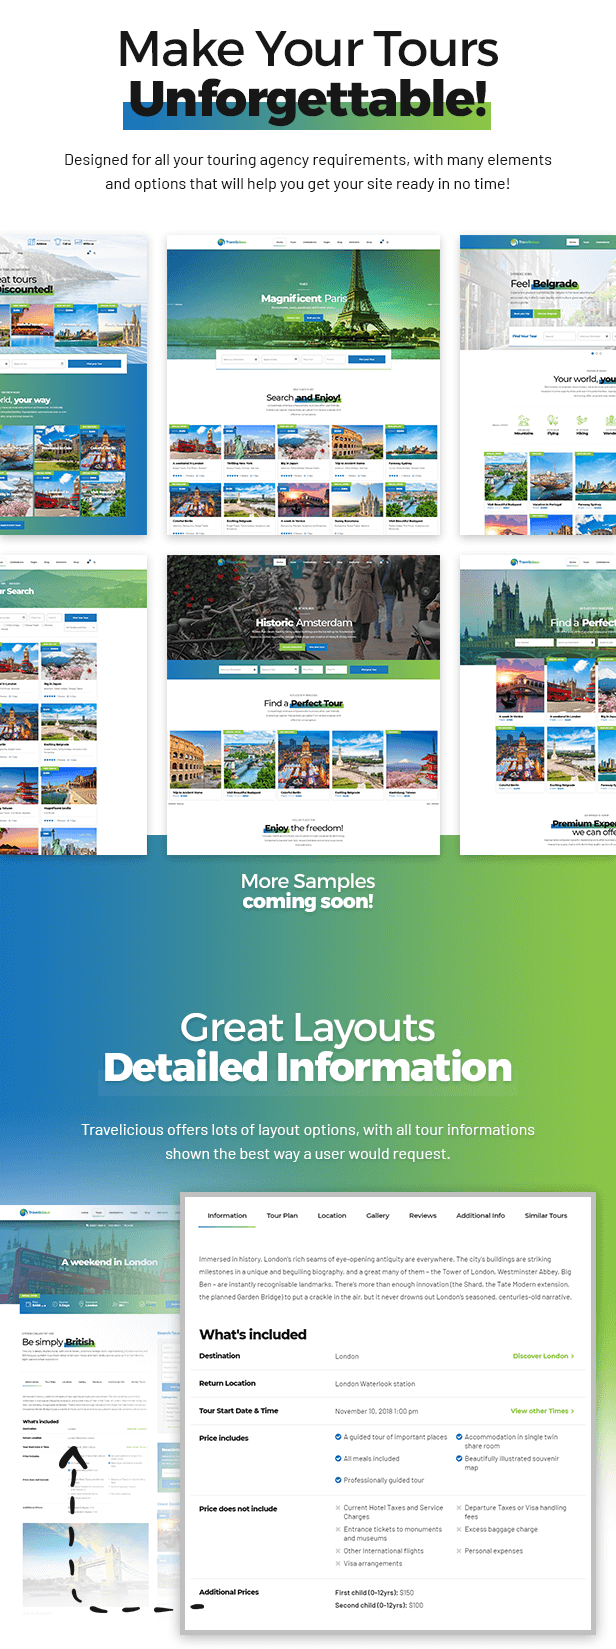 Travelicious - Tour Operator Theme - 1